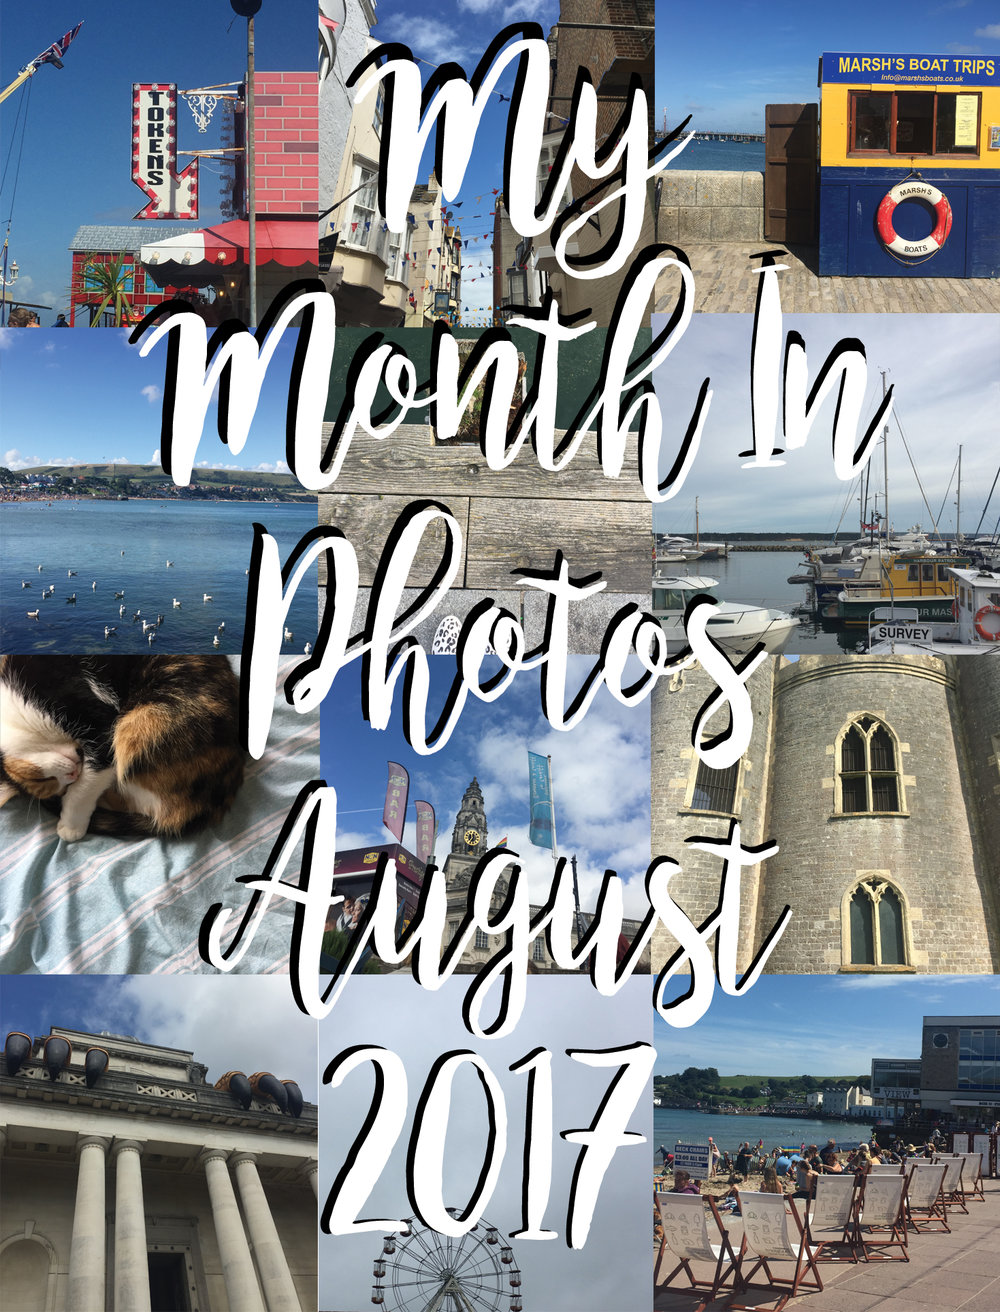 My month in photos - August 2017